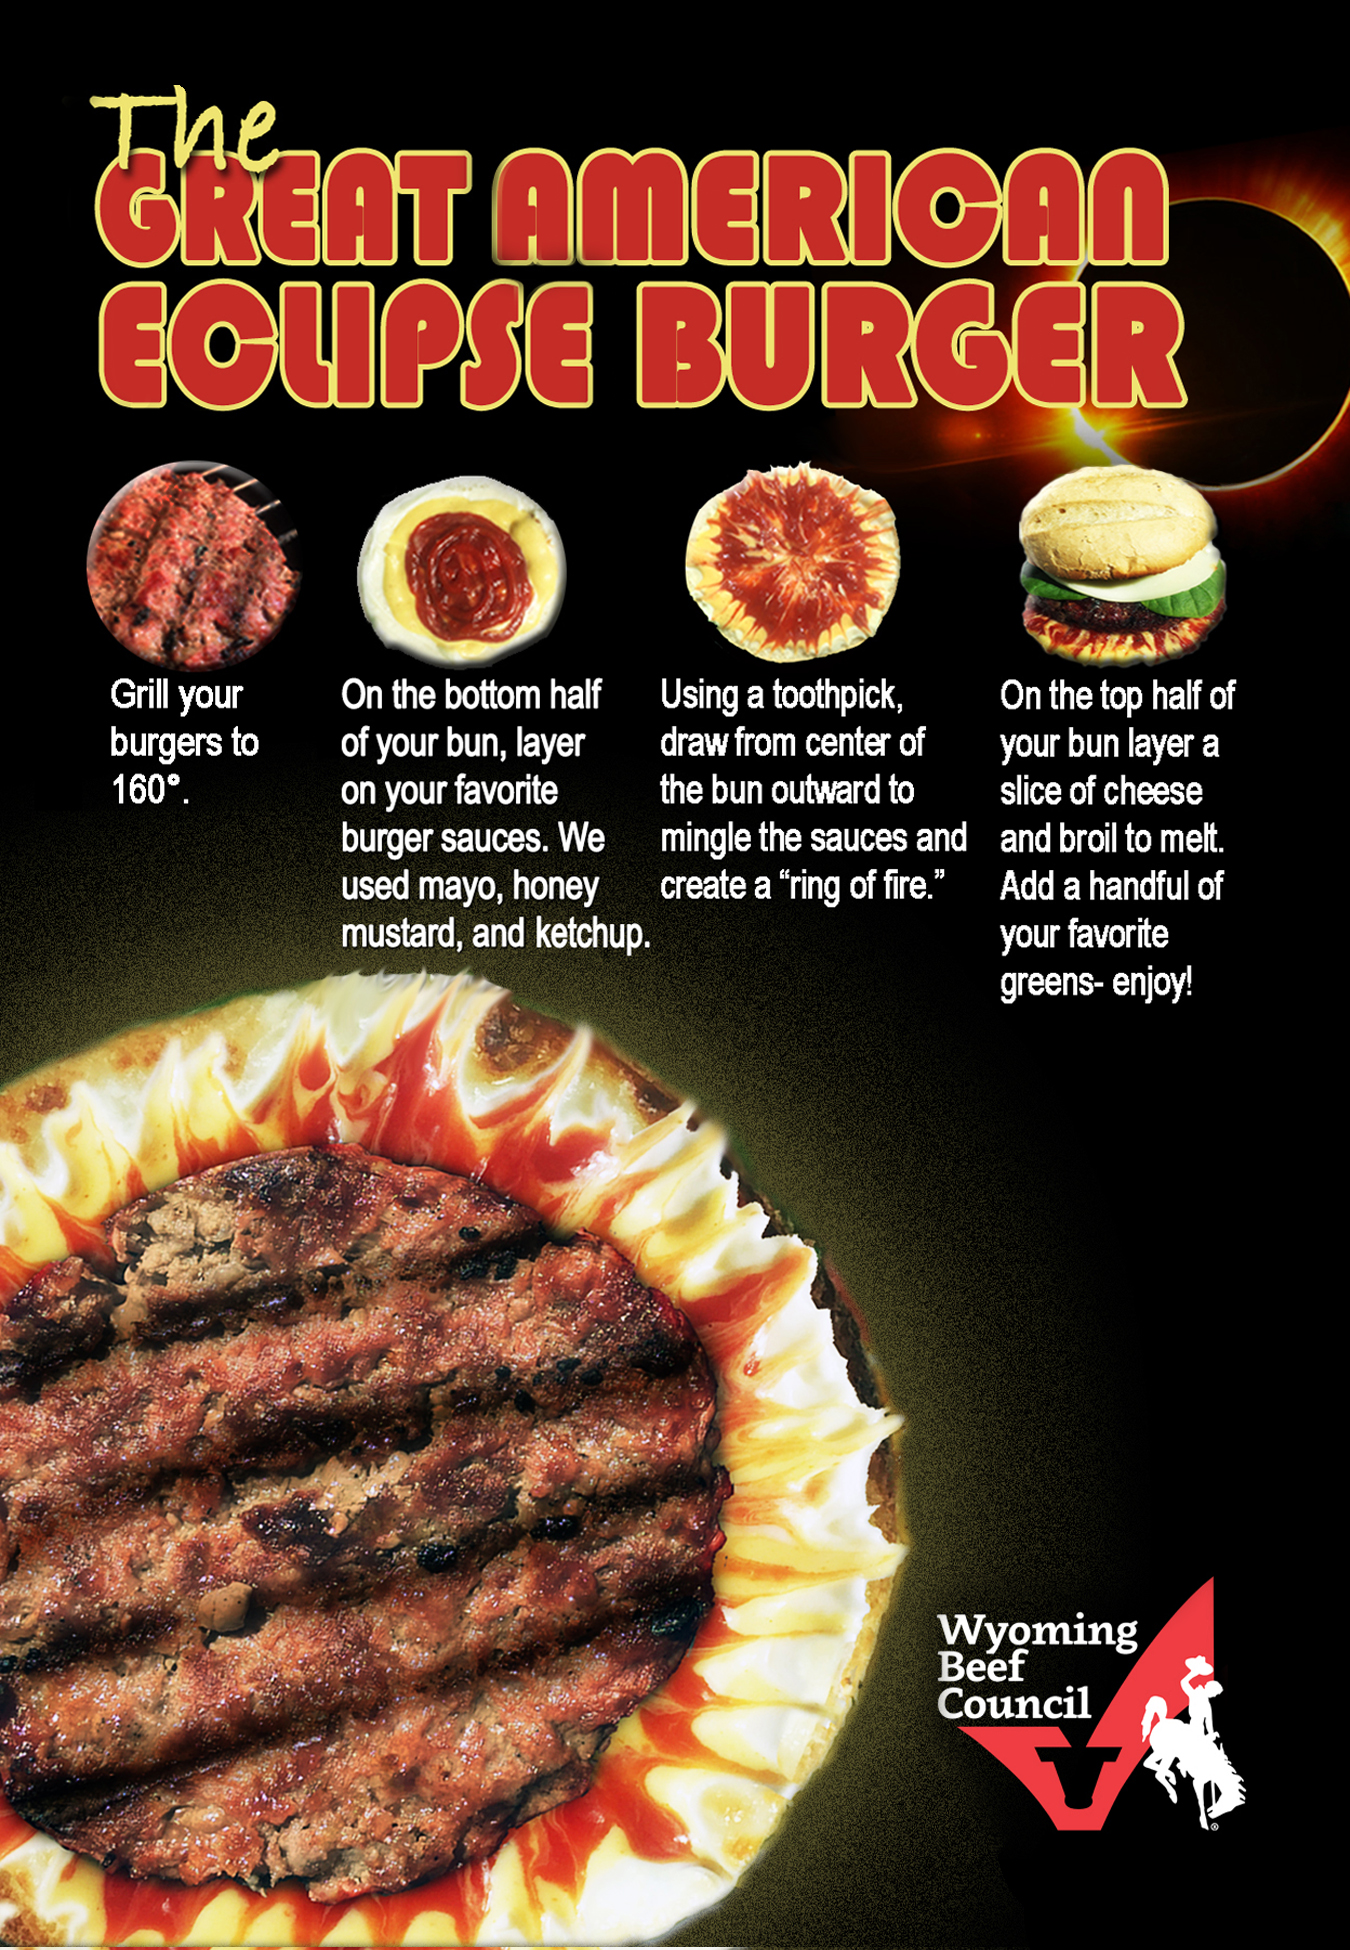 Celebrate the historic eclipse in style with the Great American Eclipse Burger